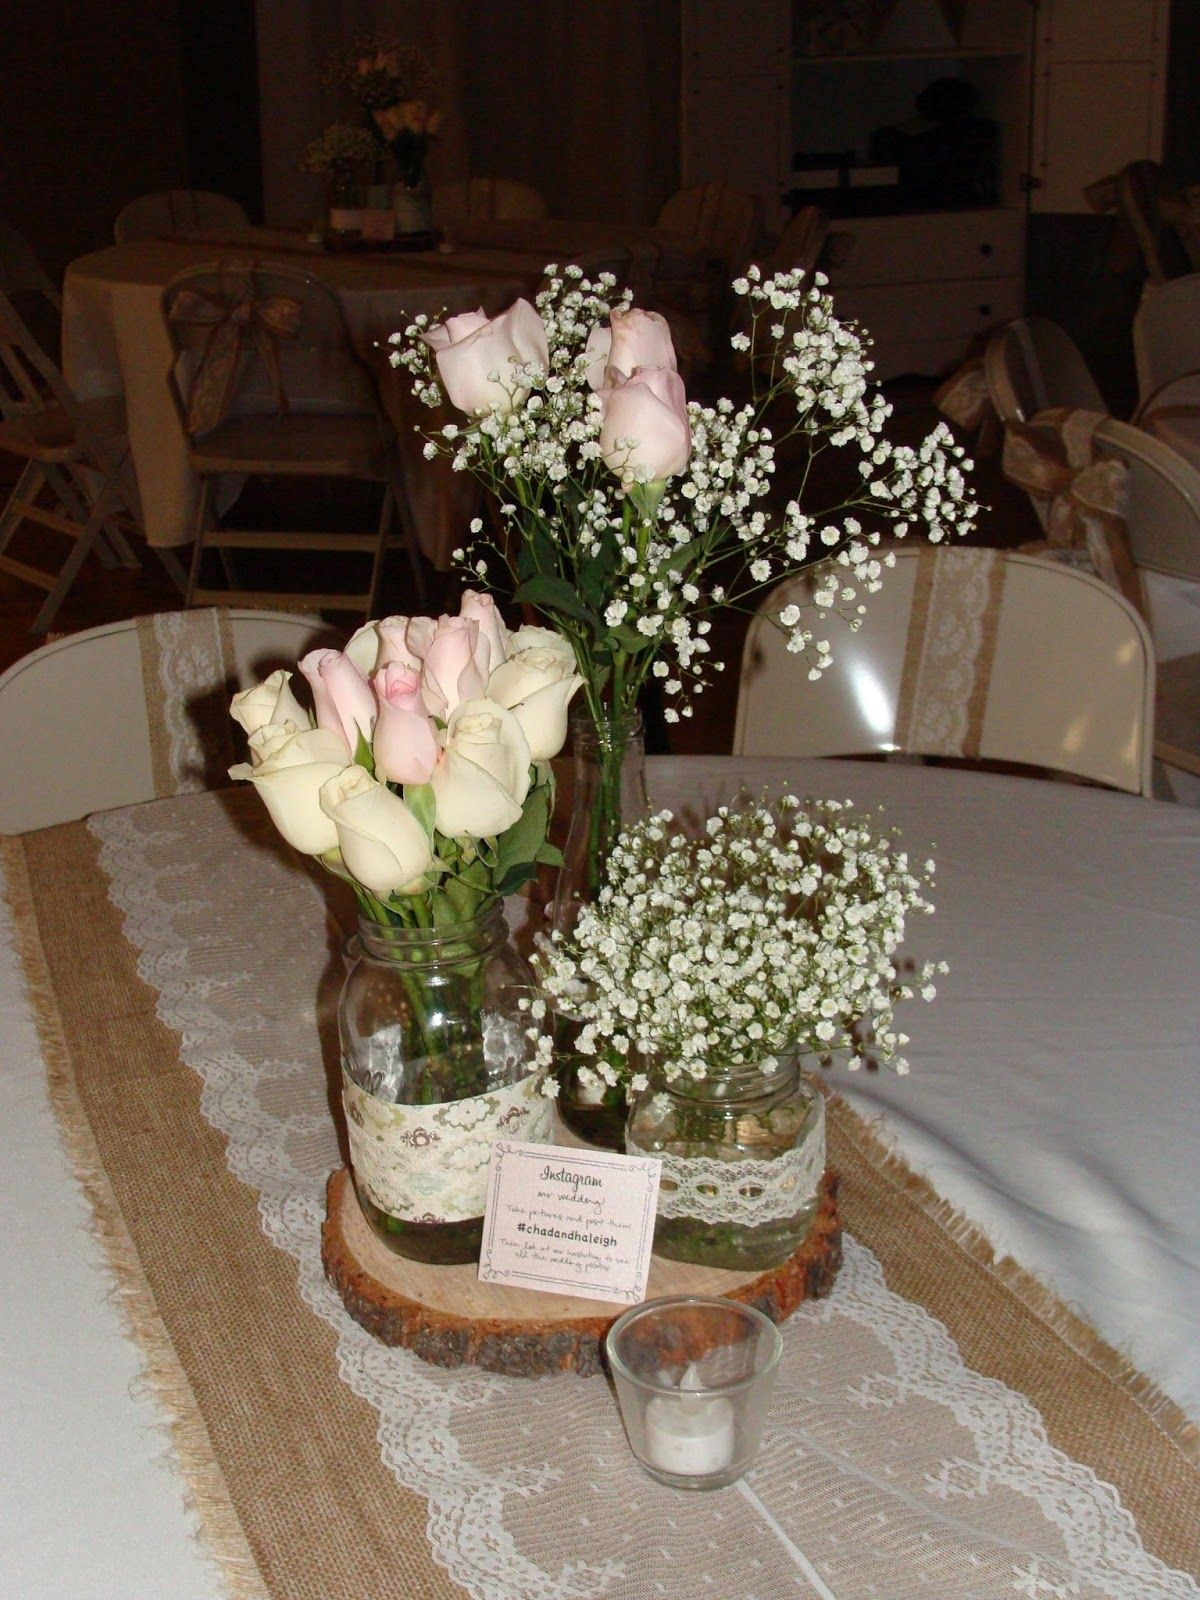 Burlap and Lace Table Cloths | and lace served as a simple runner ...